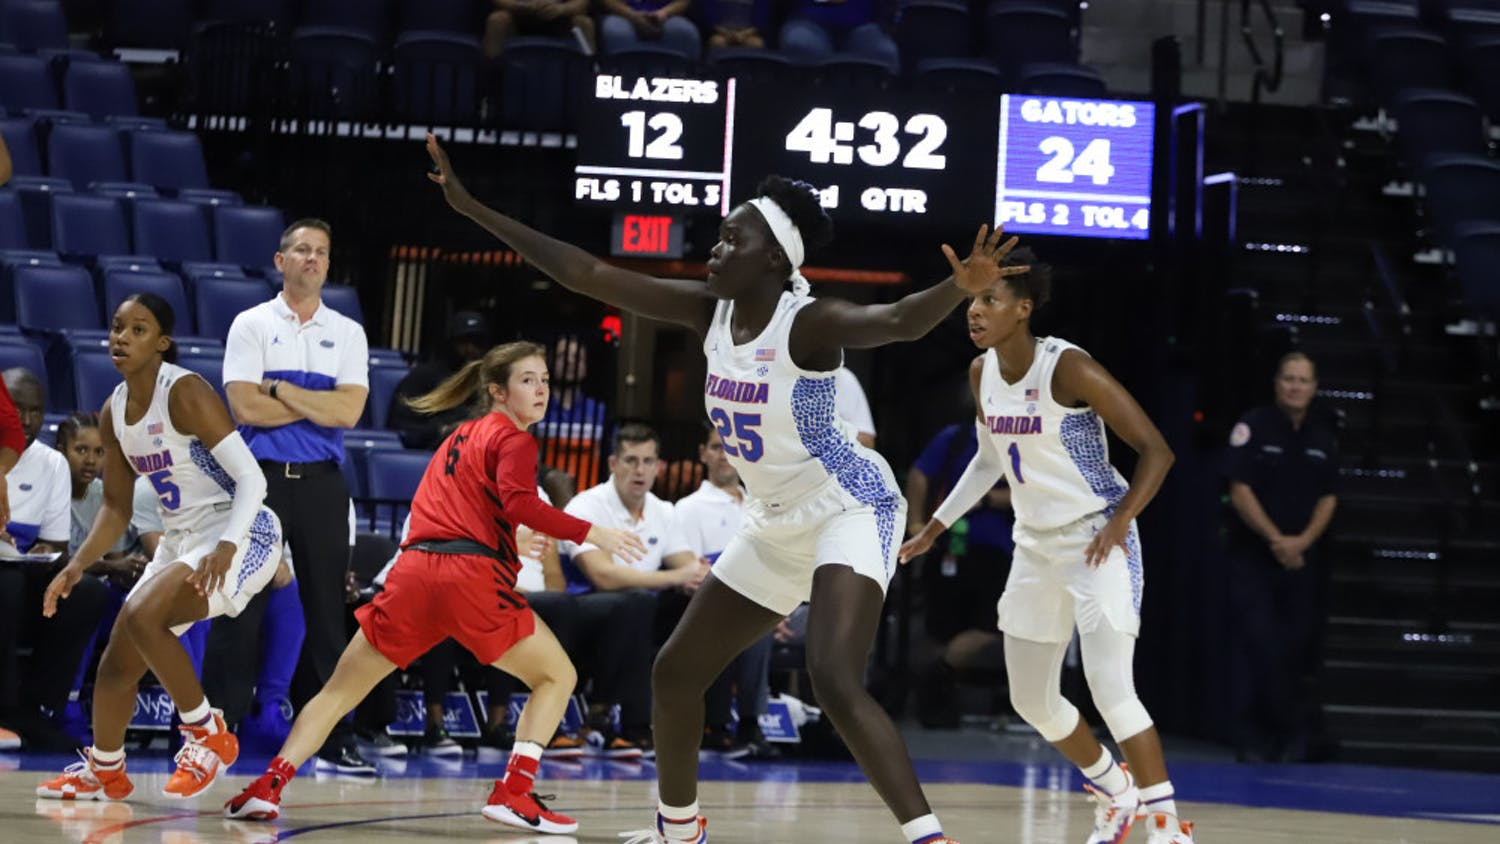 Florida forward Faith Dut (25) and the Gators take on FSU Tuesday at 6:00 p.m. in Tallahassee, Florida.